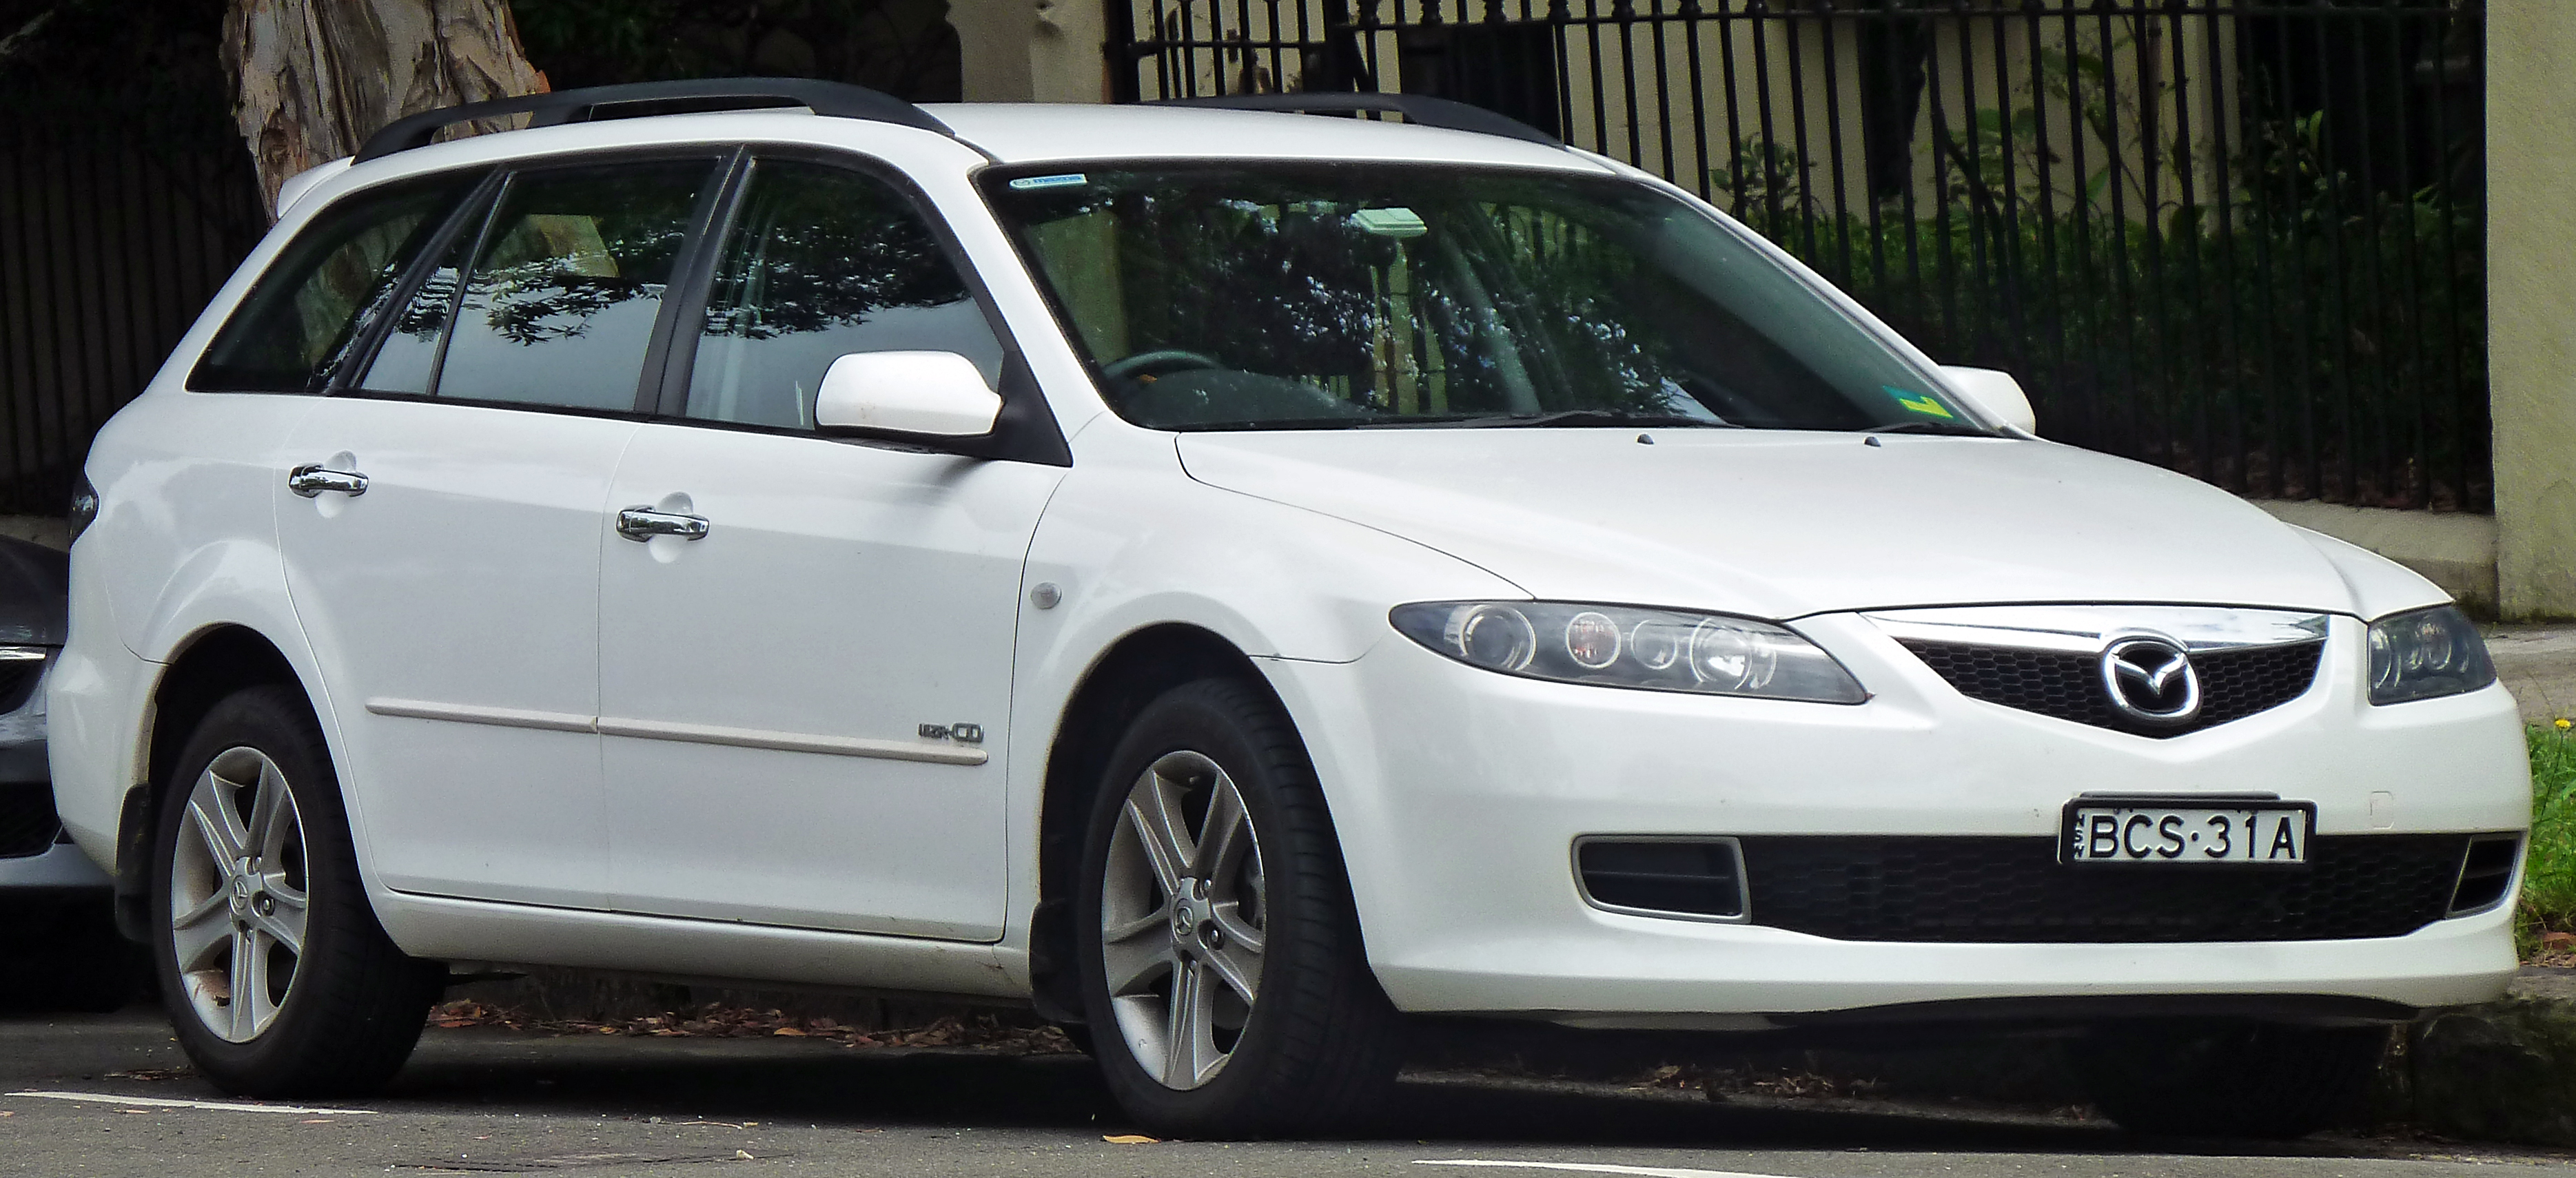 https://upload.wikimedia.org/wikipedia/commons/3/3d/2006-2007_Mazda_6_%28GY_Series_2%29_MZR-CD_station_wagon_%282011-01-13%29.jpg